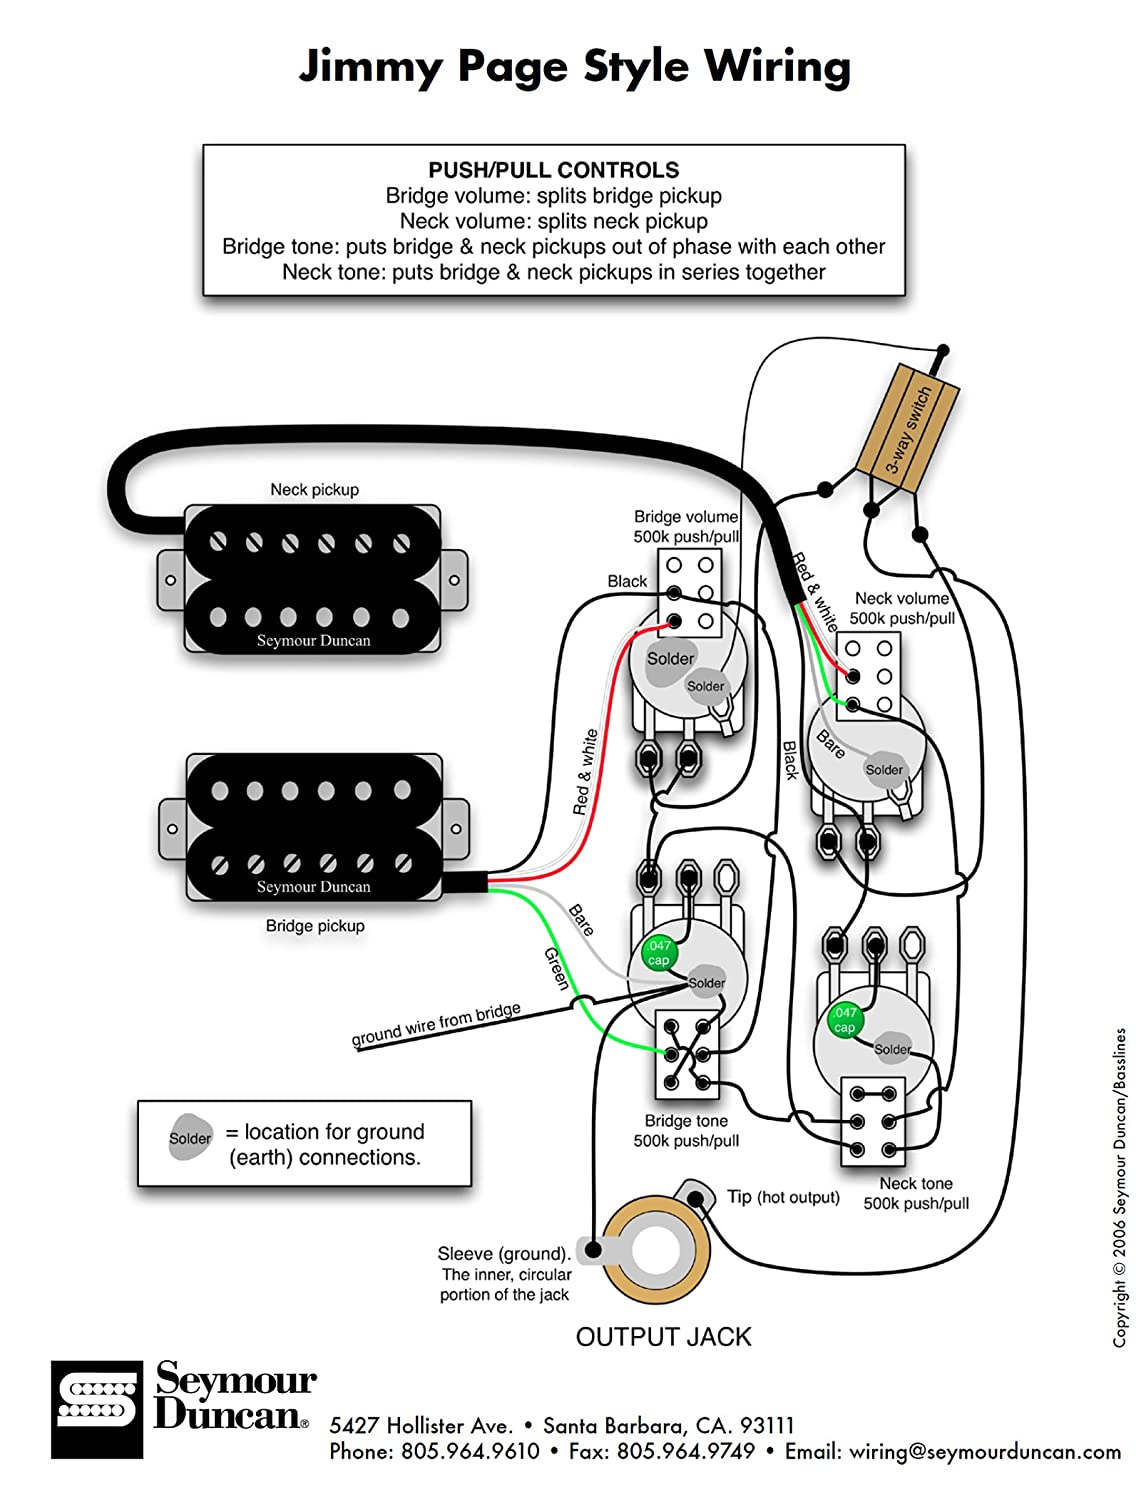 Duncan Wiring Diagrams Hss Change Your Idea With Diagram Obsidian Pearly Gates Seymour Diagramt Library Rh 62 Nepalchitragupta Org Pickup Sss 2008